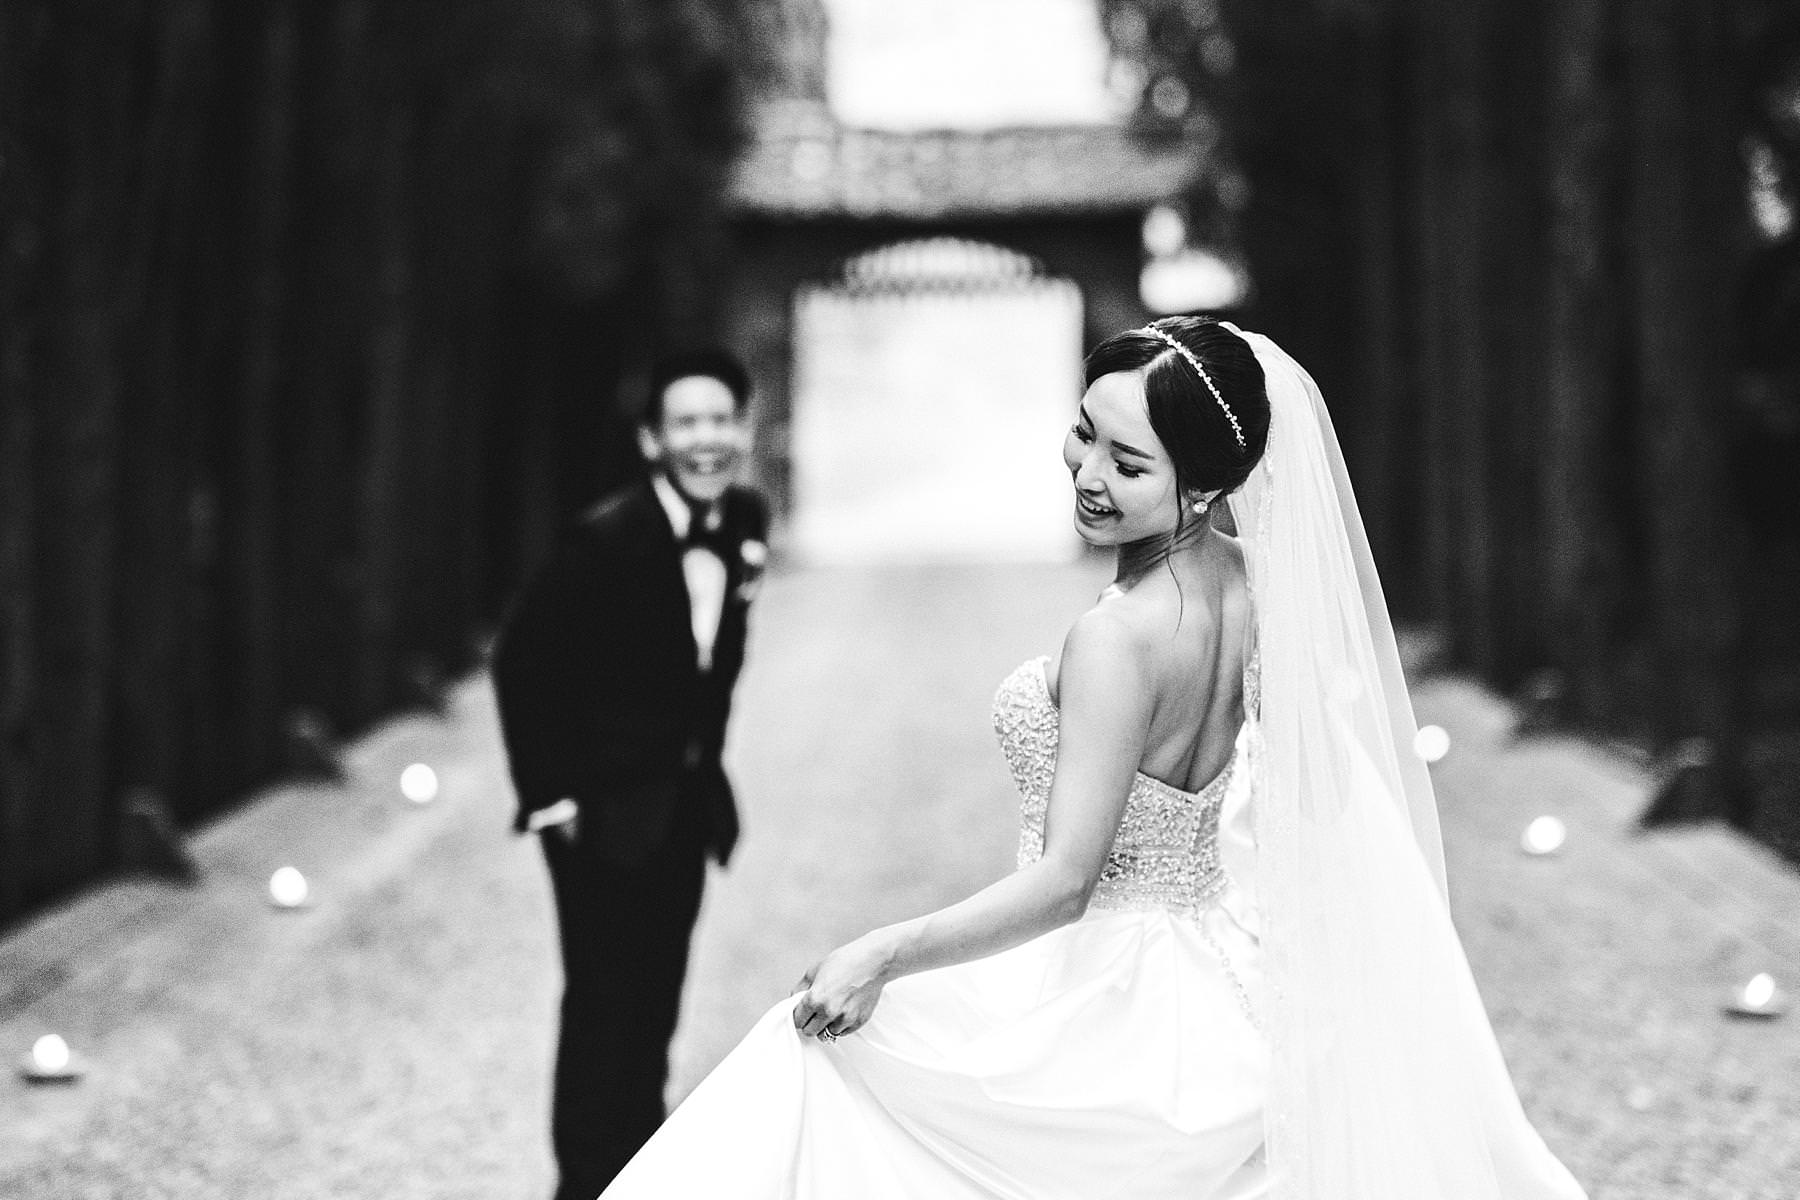 Exciting portrait session during destination castle wedding at Castello Il Palagio in Chianti, Tuscany